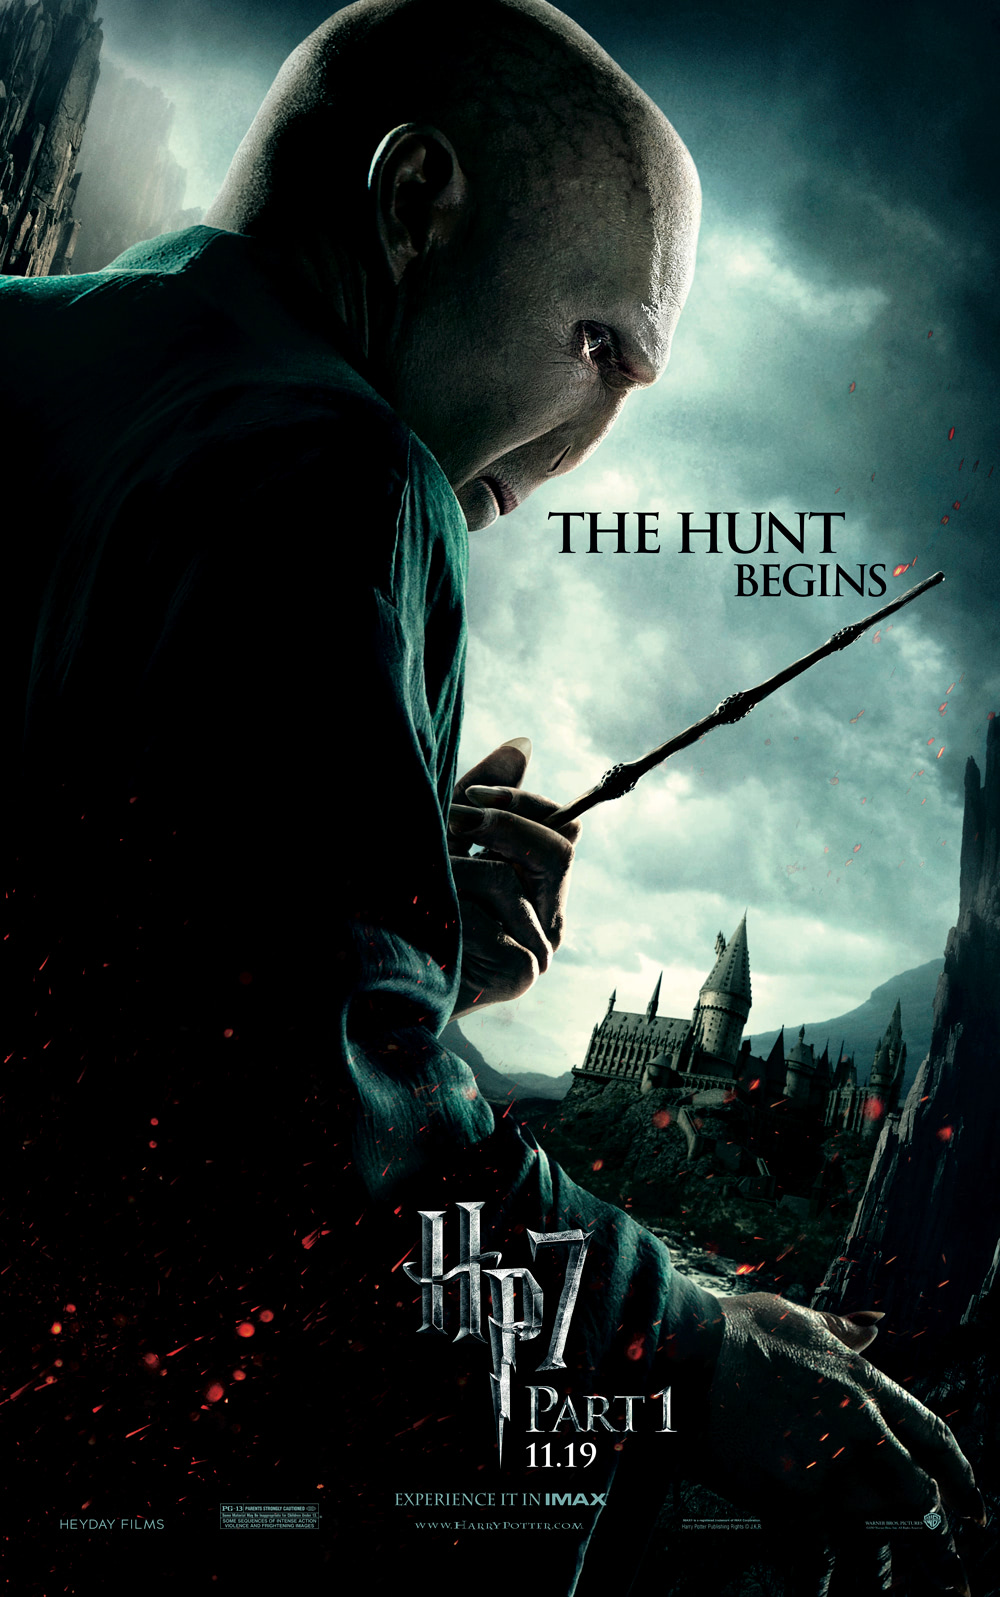 'Deathly Hallows: Part 1' Voldemort poster